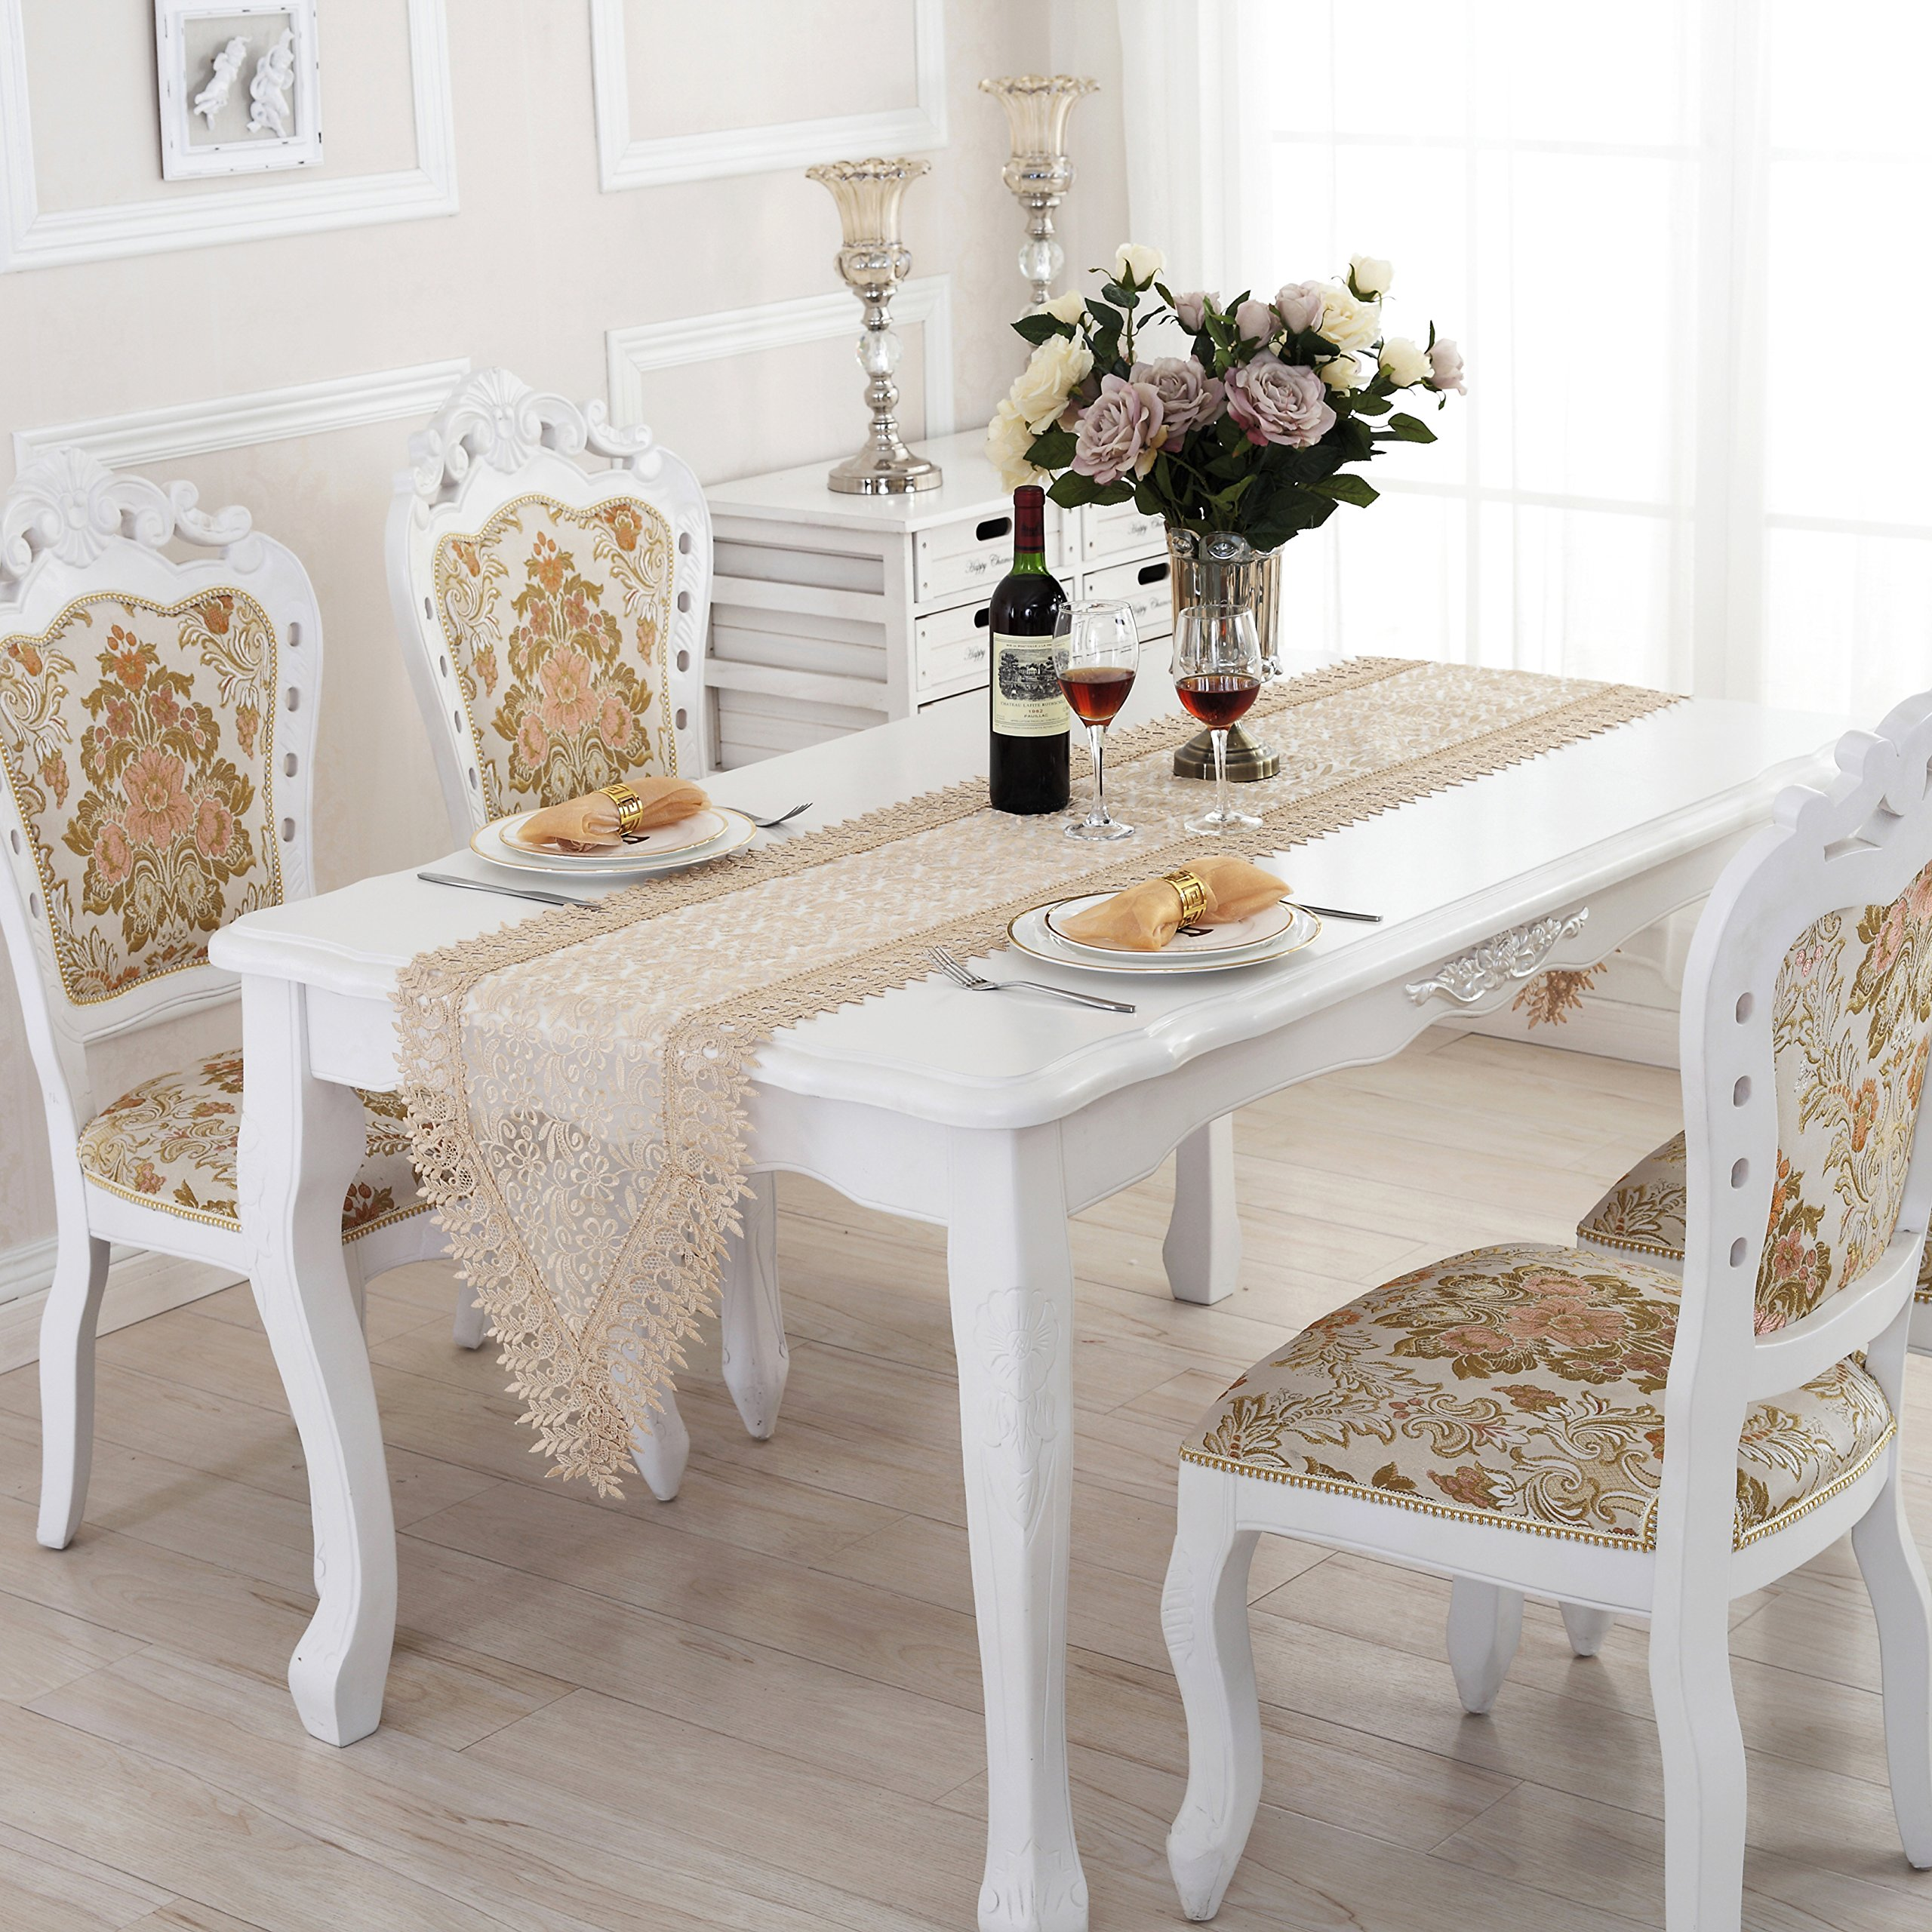 QXFSMILE White Lace Table Runner Embroidered Farbic Floral Table Cover Unique Home Decoration 16 By 120 Inch